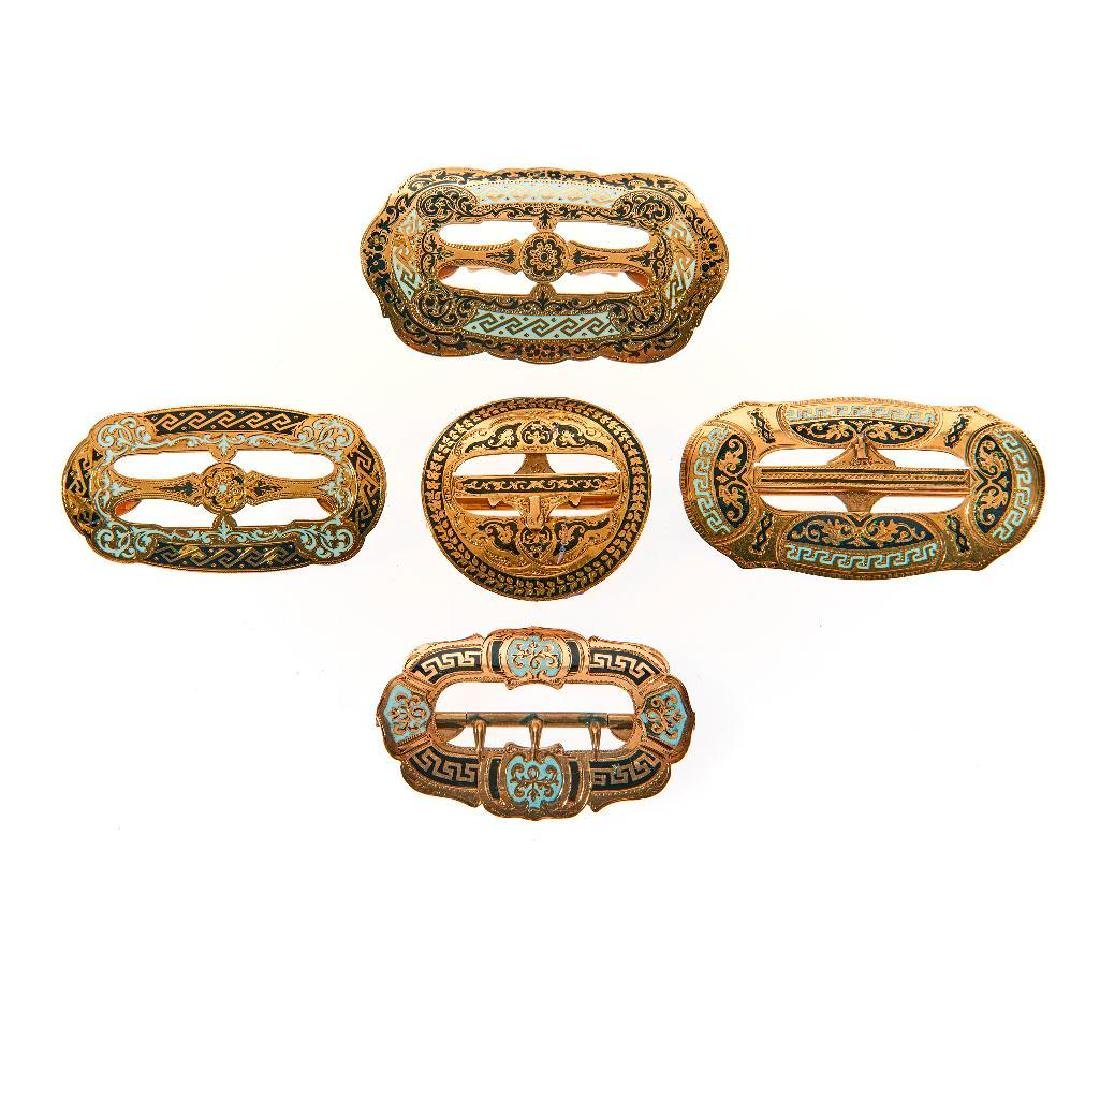 Collection of Victorian tracery enamel gold buckles